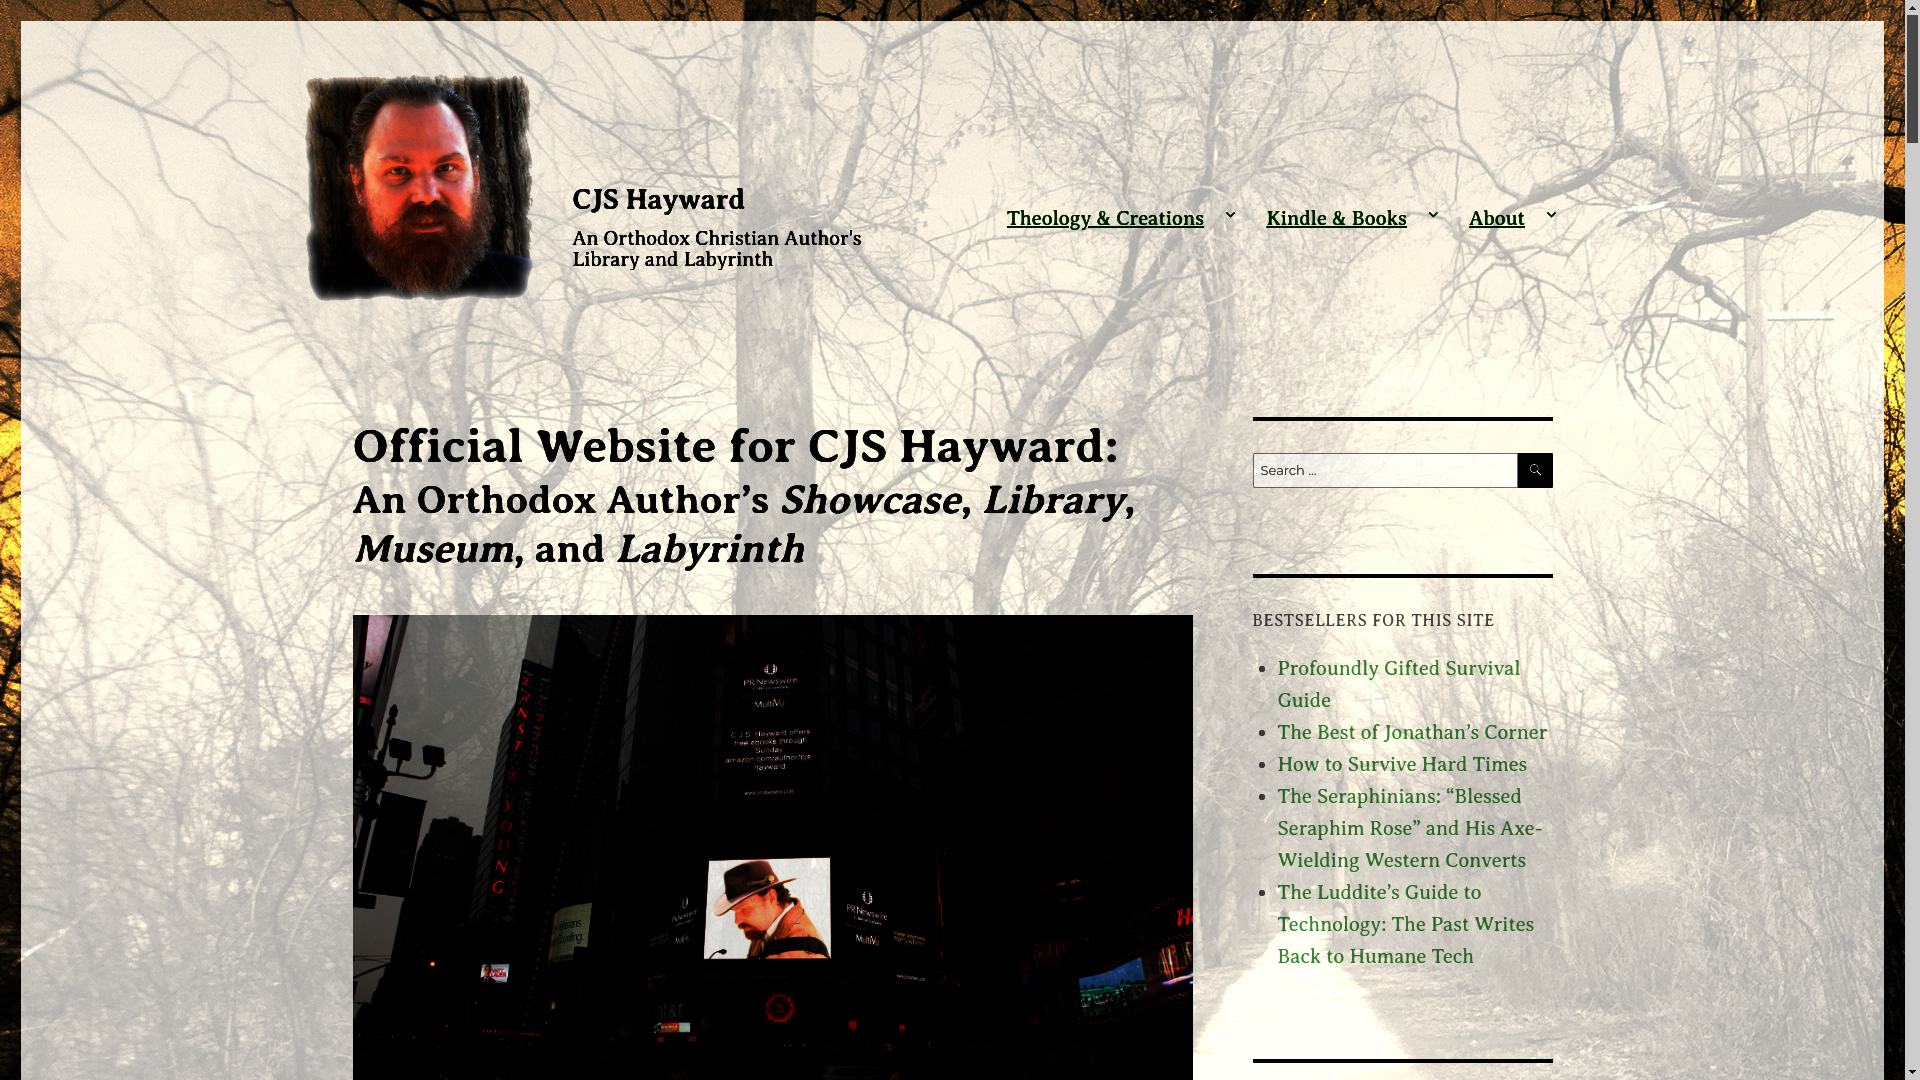 A screenshot of the CJSHayward.com homepage